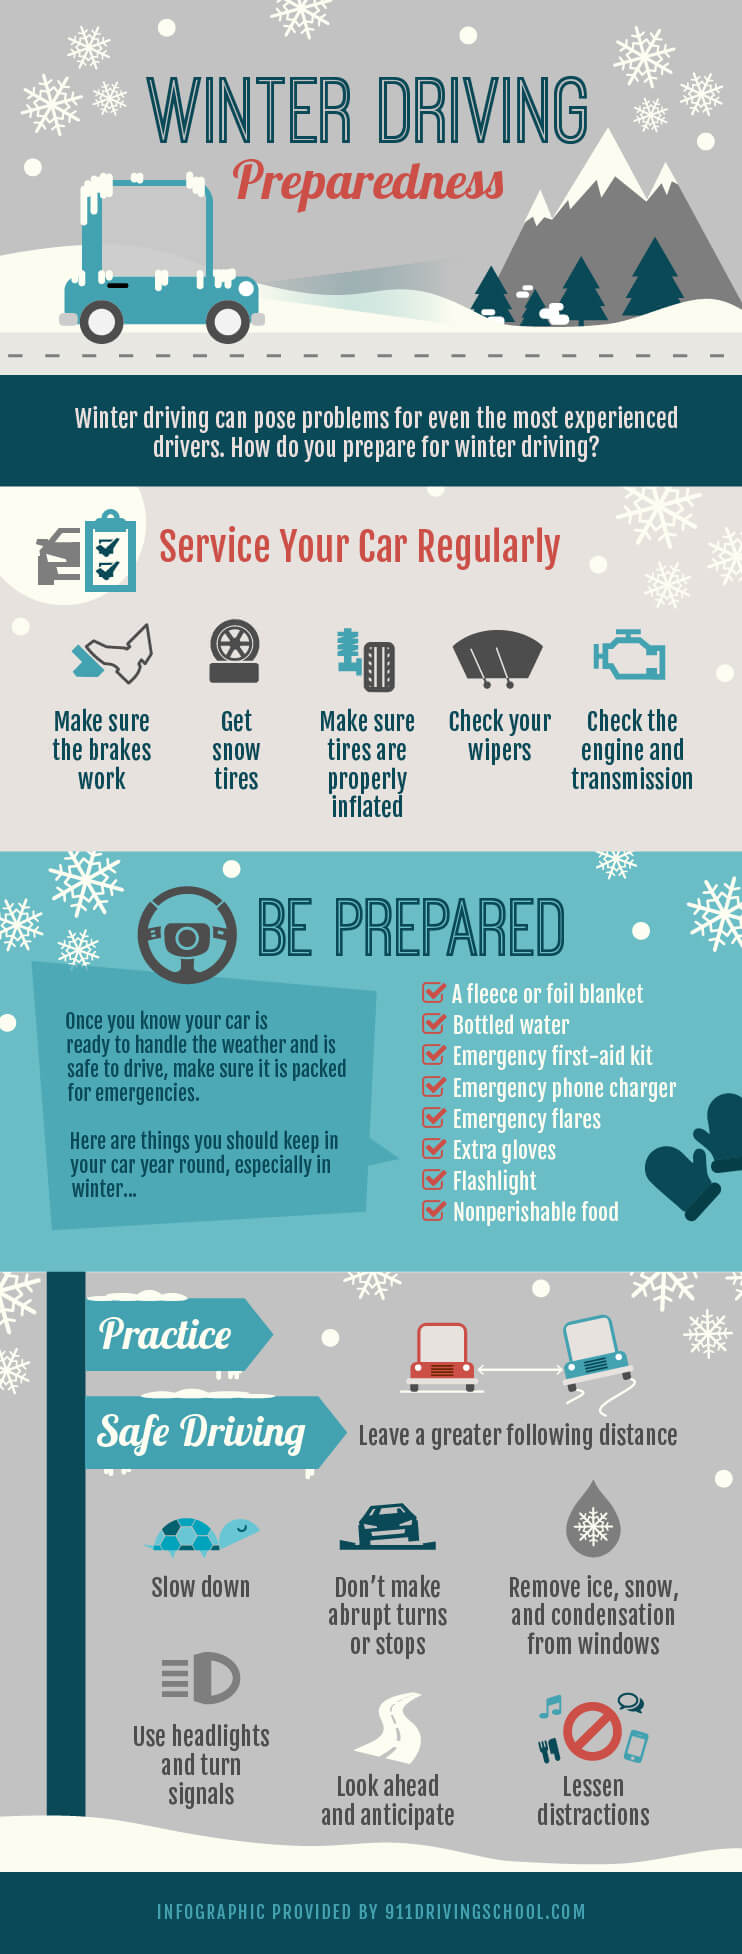 911-driving-school-winter-driving-infographic-20161215